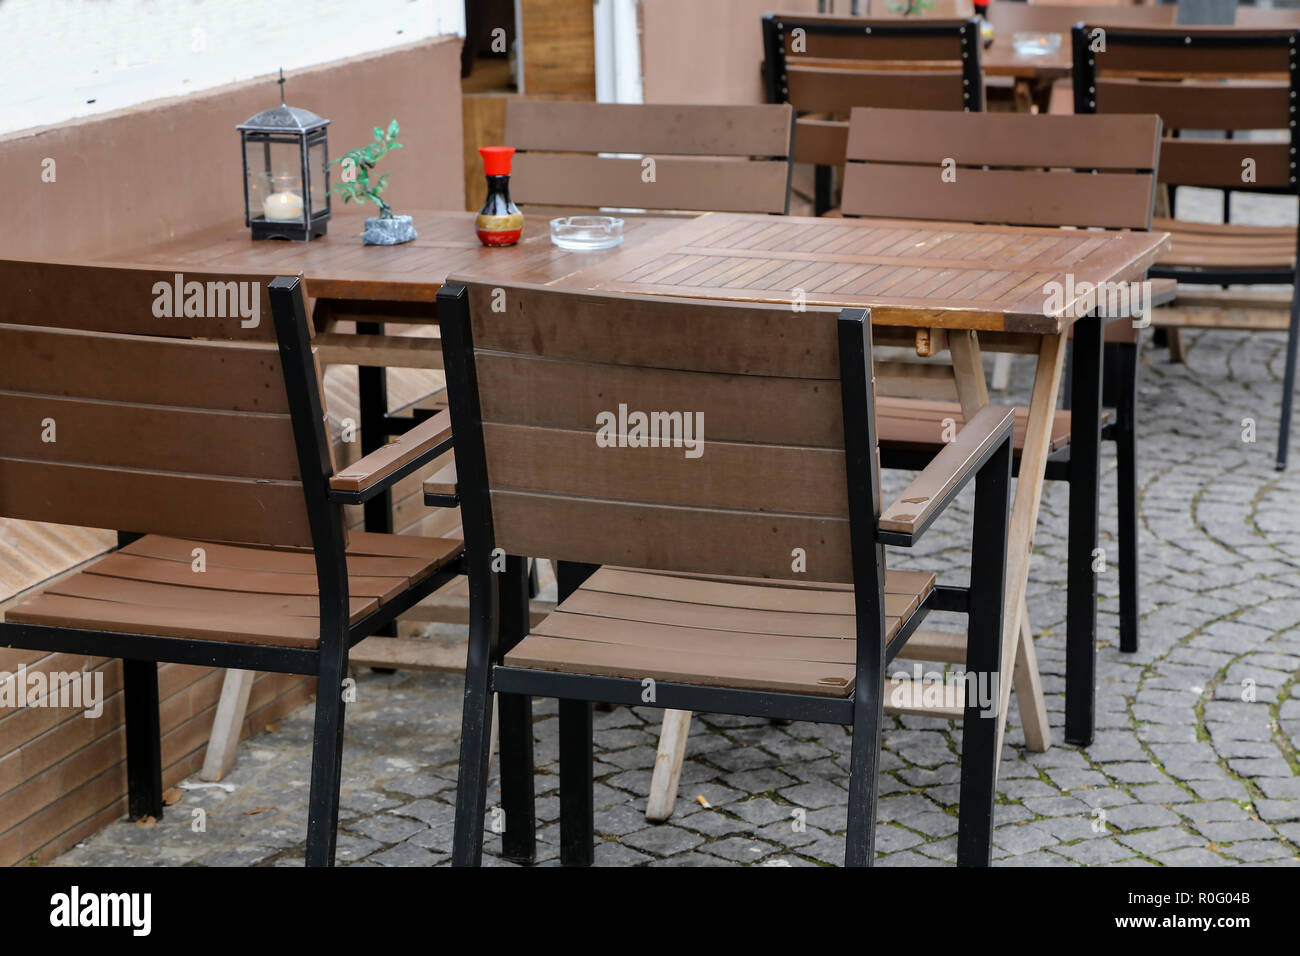 Reastaurant Tables Cozy Street Restaurant Tables And Chairs In The Street Stock